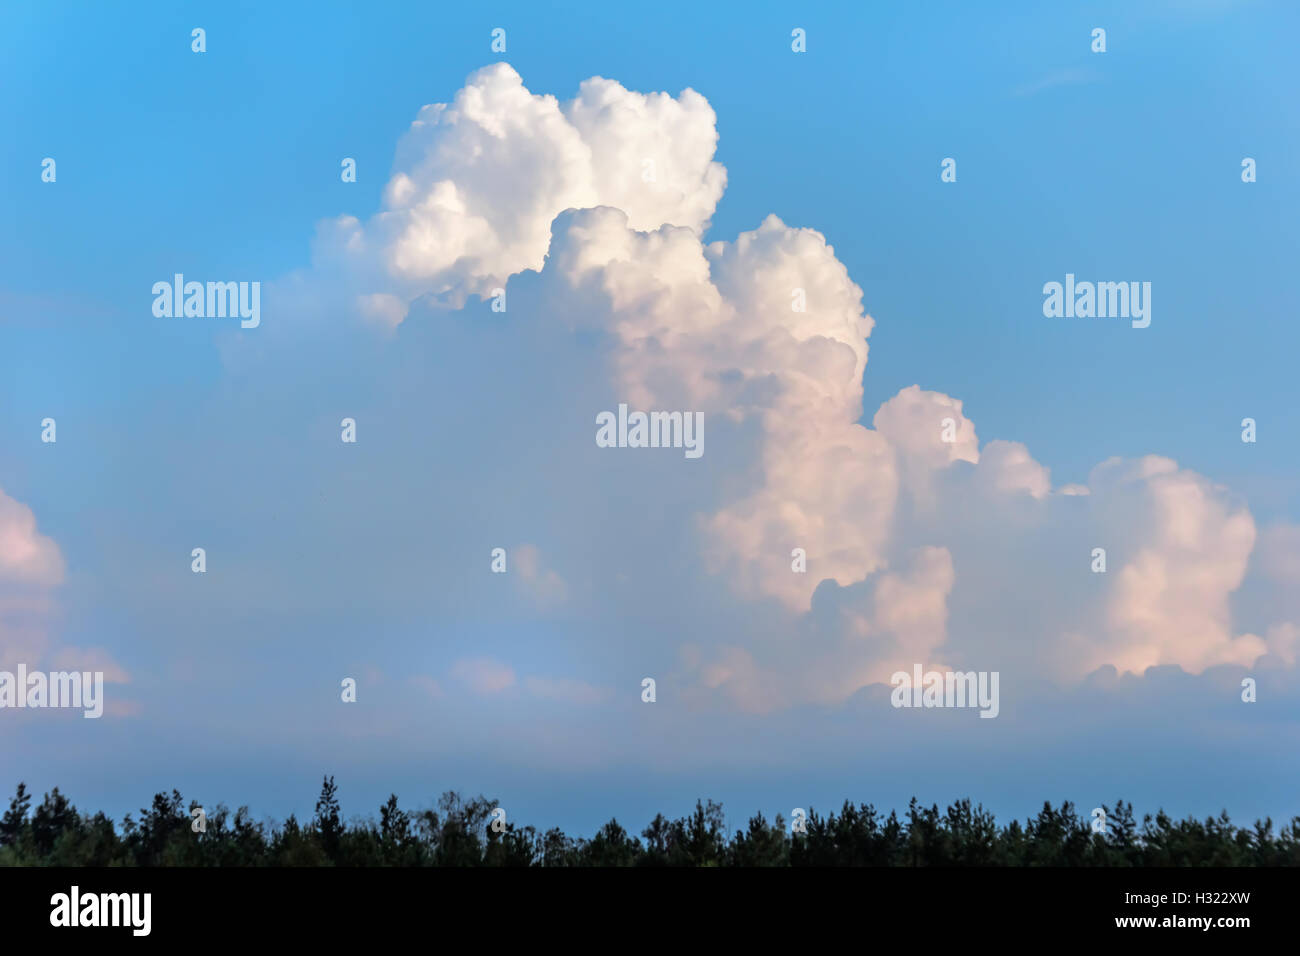 Beauty white fluffy clouds at sunset blue evening sky - Stock Image